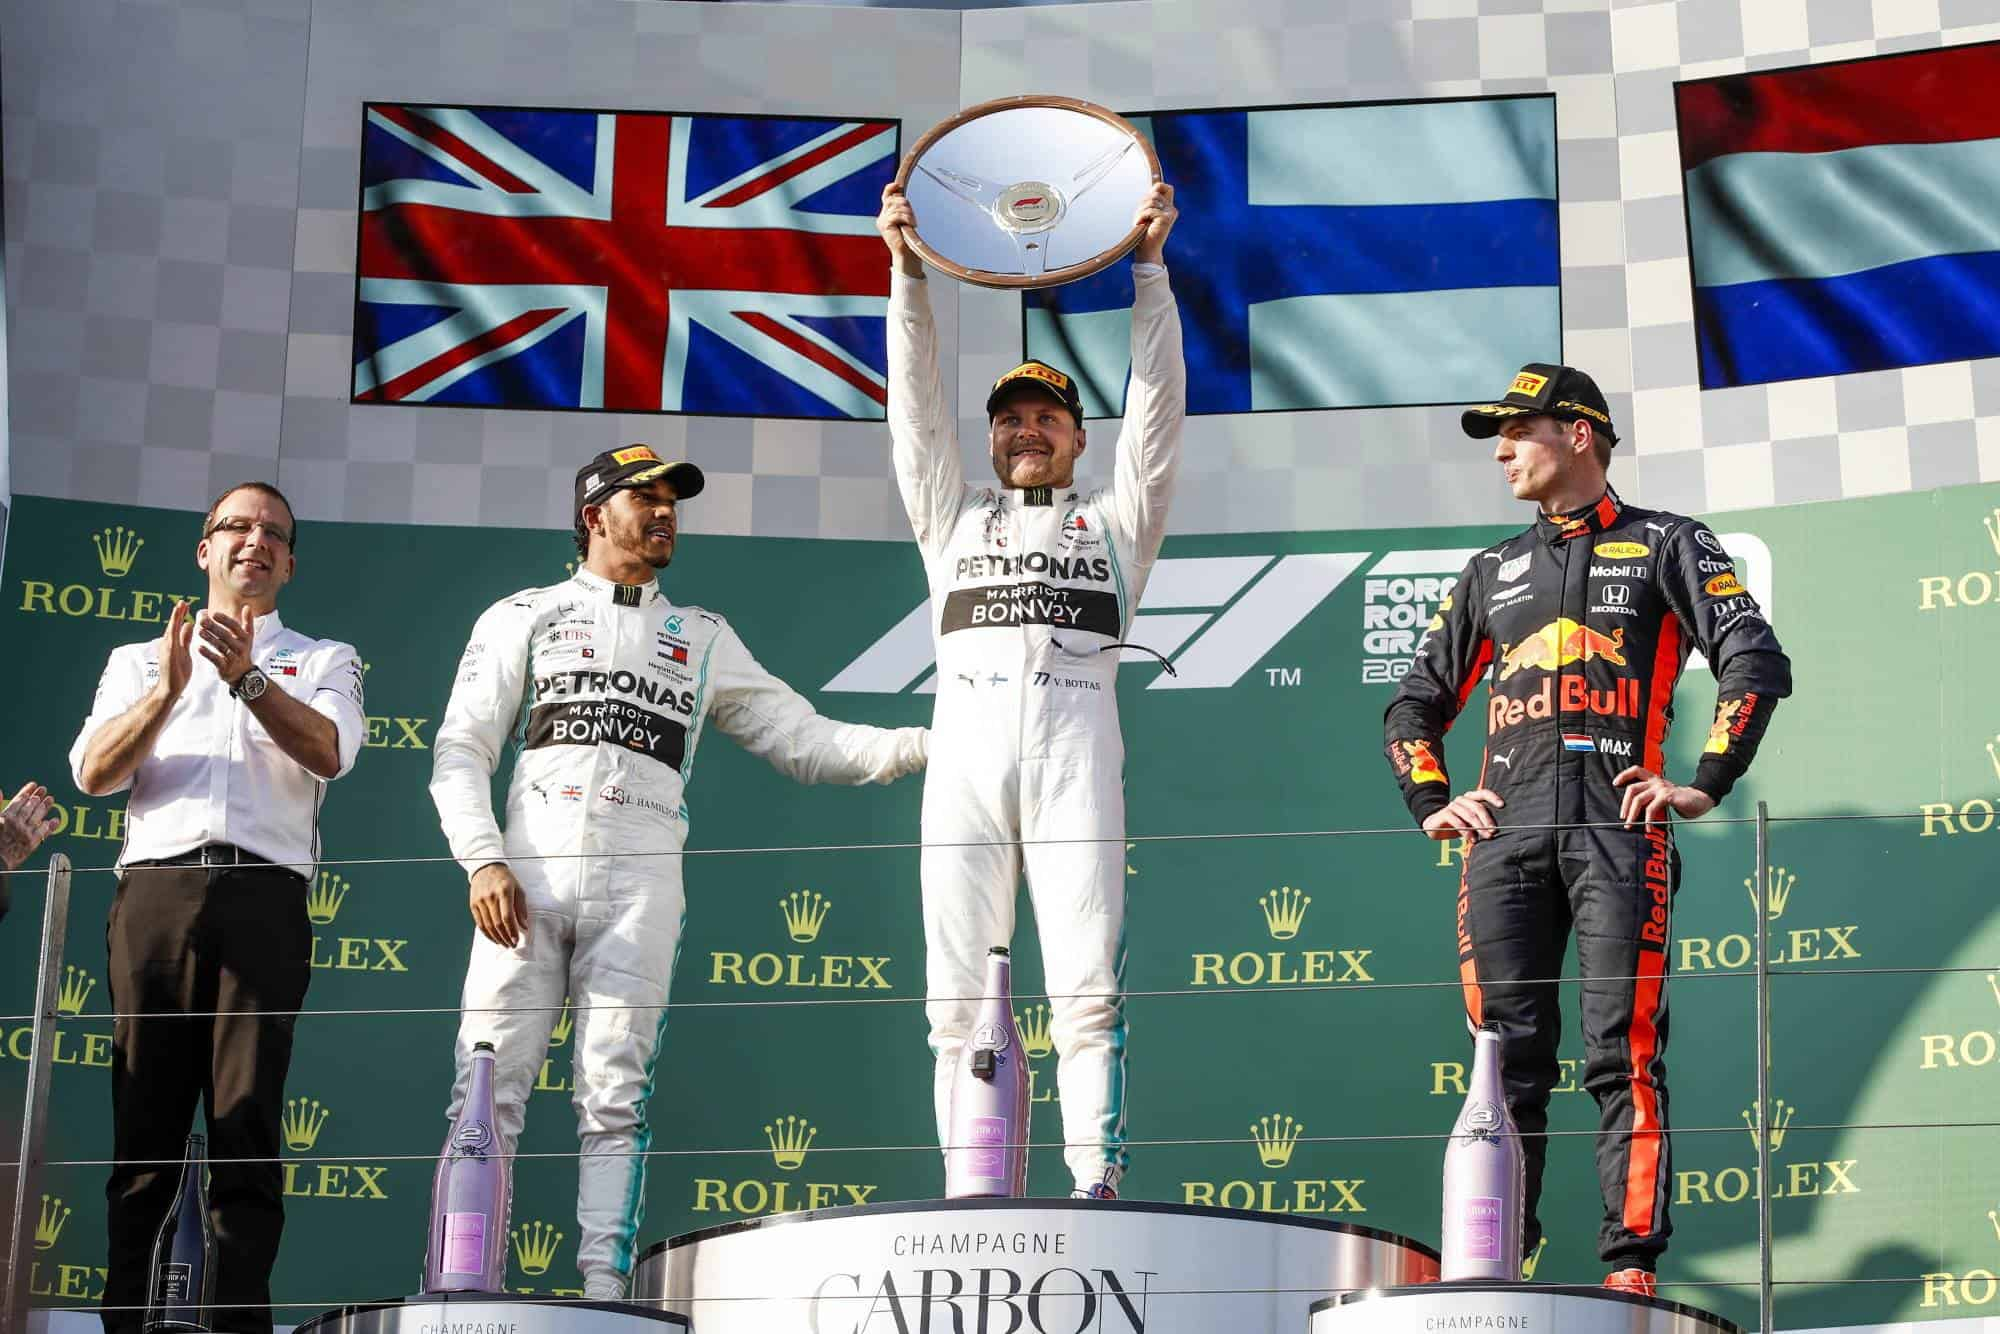 Australian GP F1 2019 podium Bottas Hamilton Verstappen Photo Daimler Edited by MAXF1net